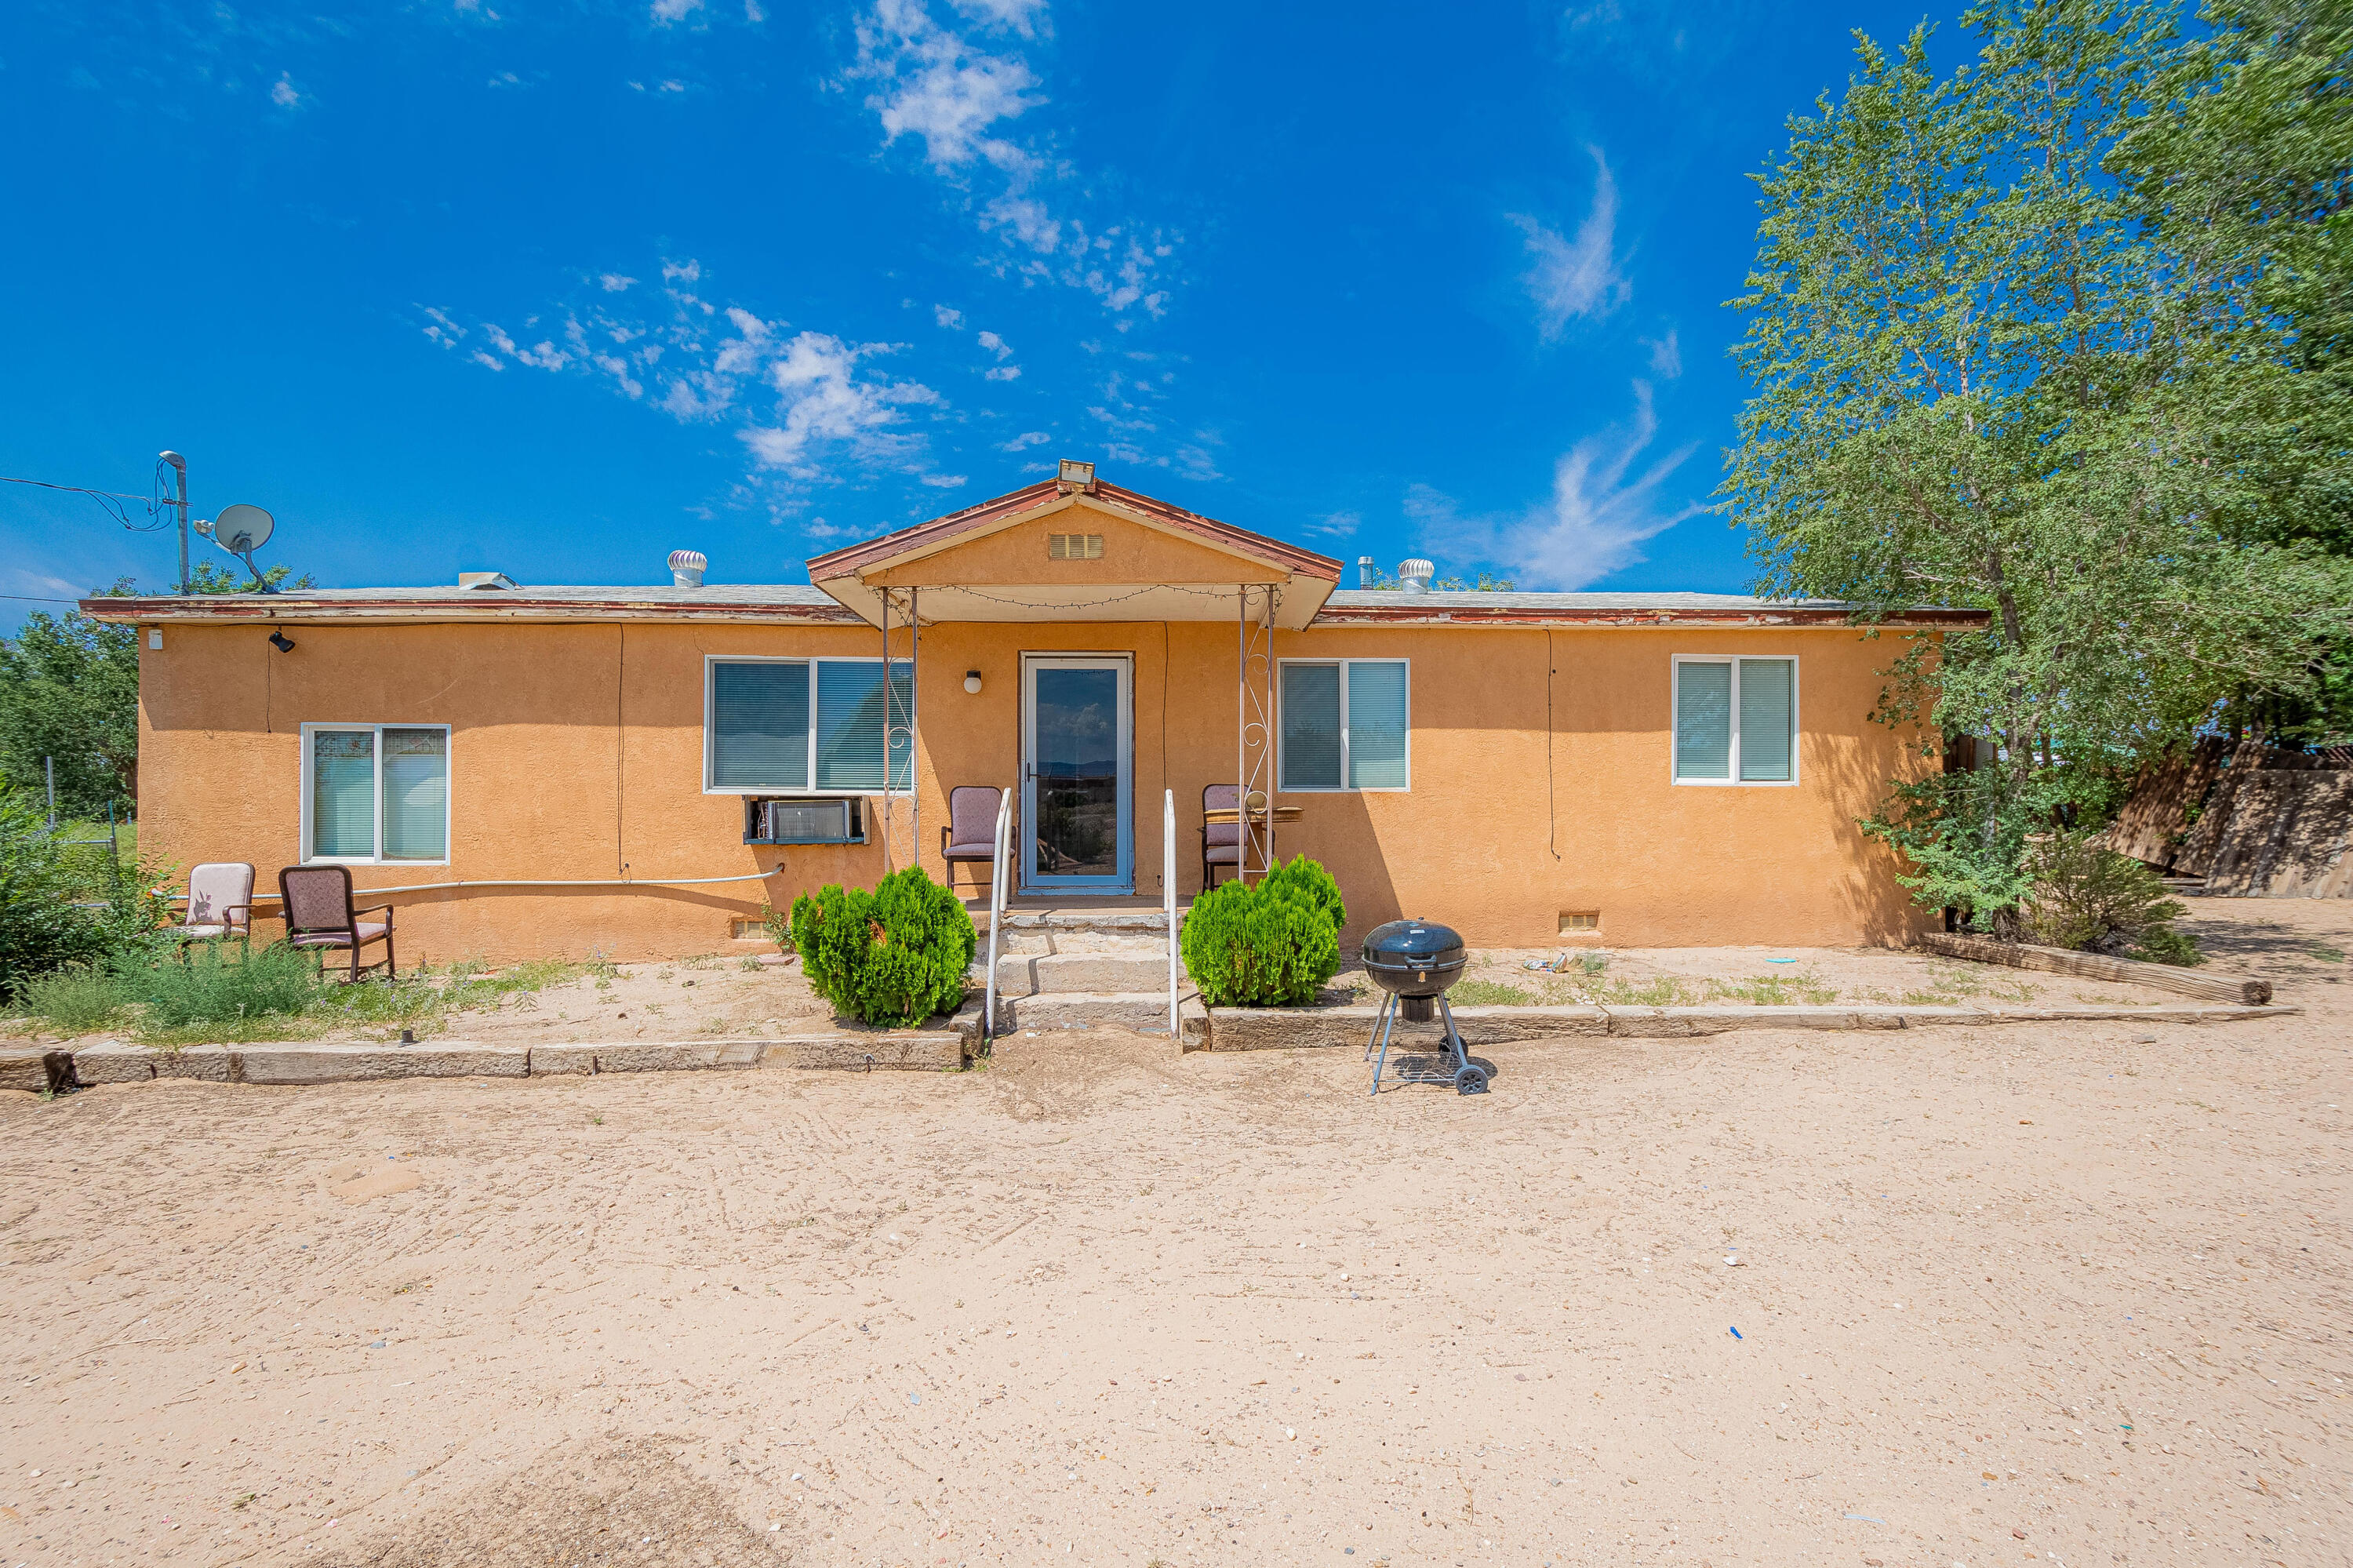 Priced to sell! This home is located on an exclusive lot in Southwest Albuquerque. Bring your imagination and let it run wild! This home has lots of potential, only needs a little TLC. Please schedule all showings through Showingtime!